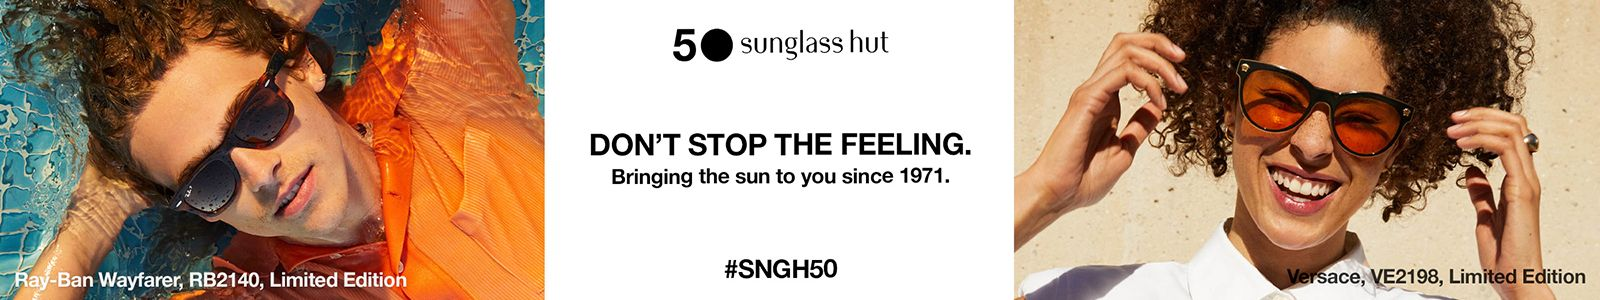 50 Sunglass hut, Don't Stop The Feeling, Bringing the sun to you since 1971